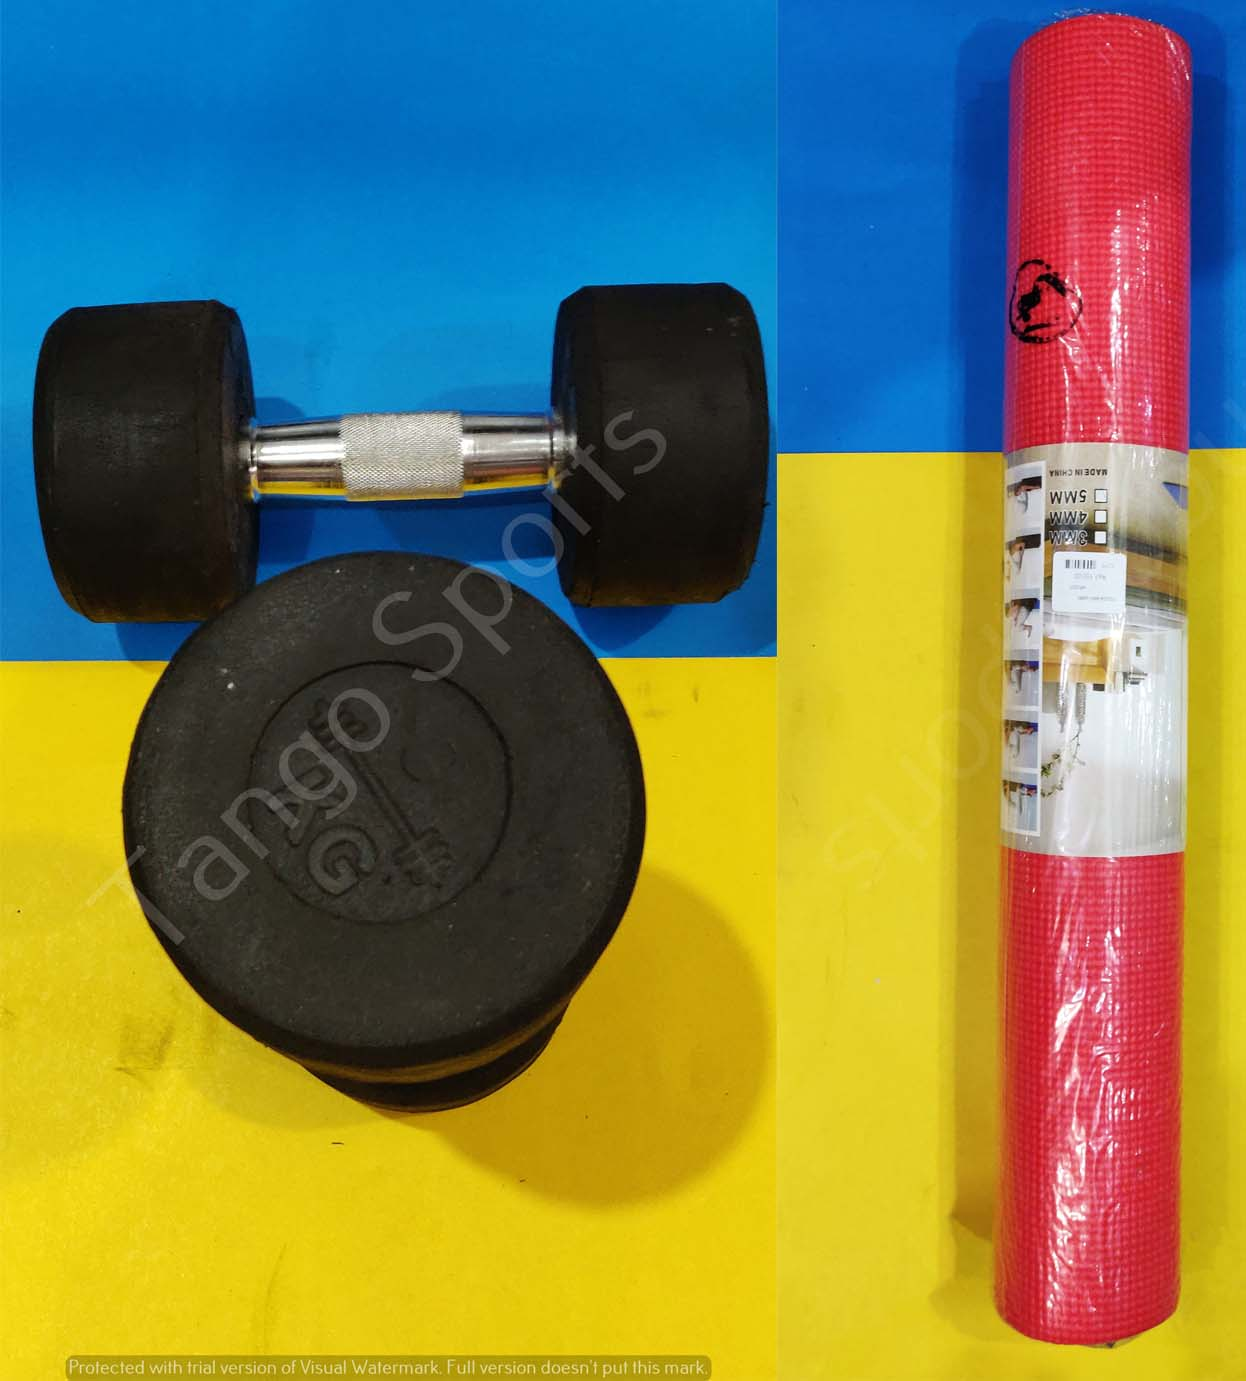 1kg Rubber Dumbell with yoga mat - Ladies workout set